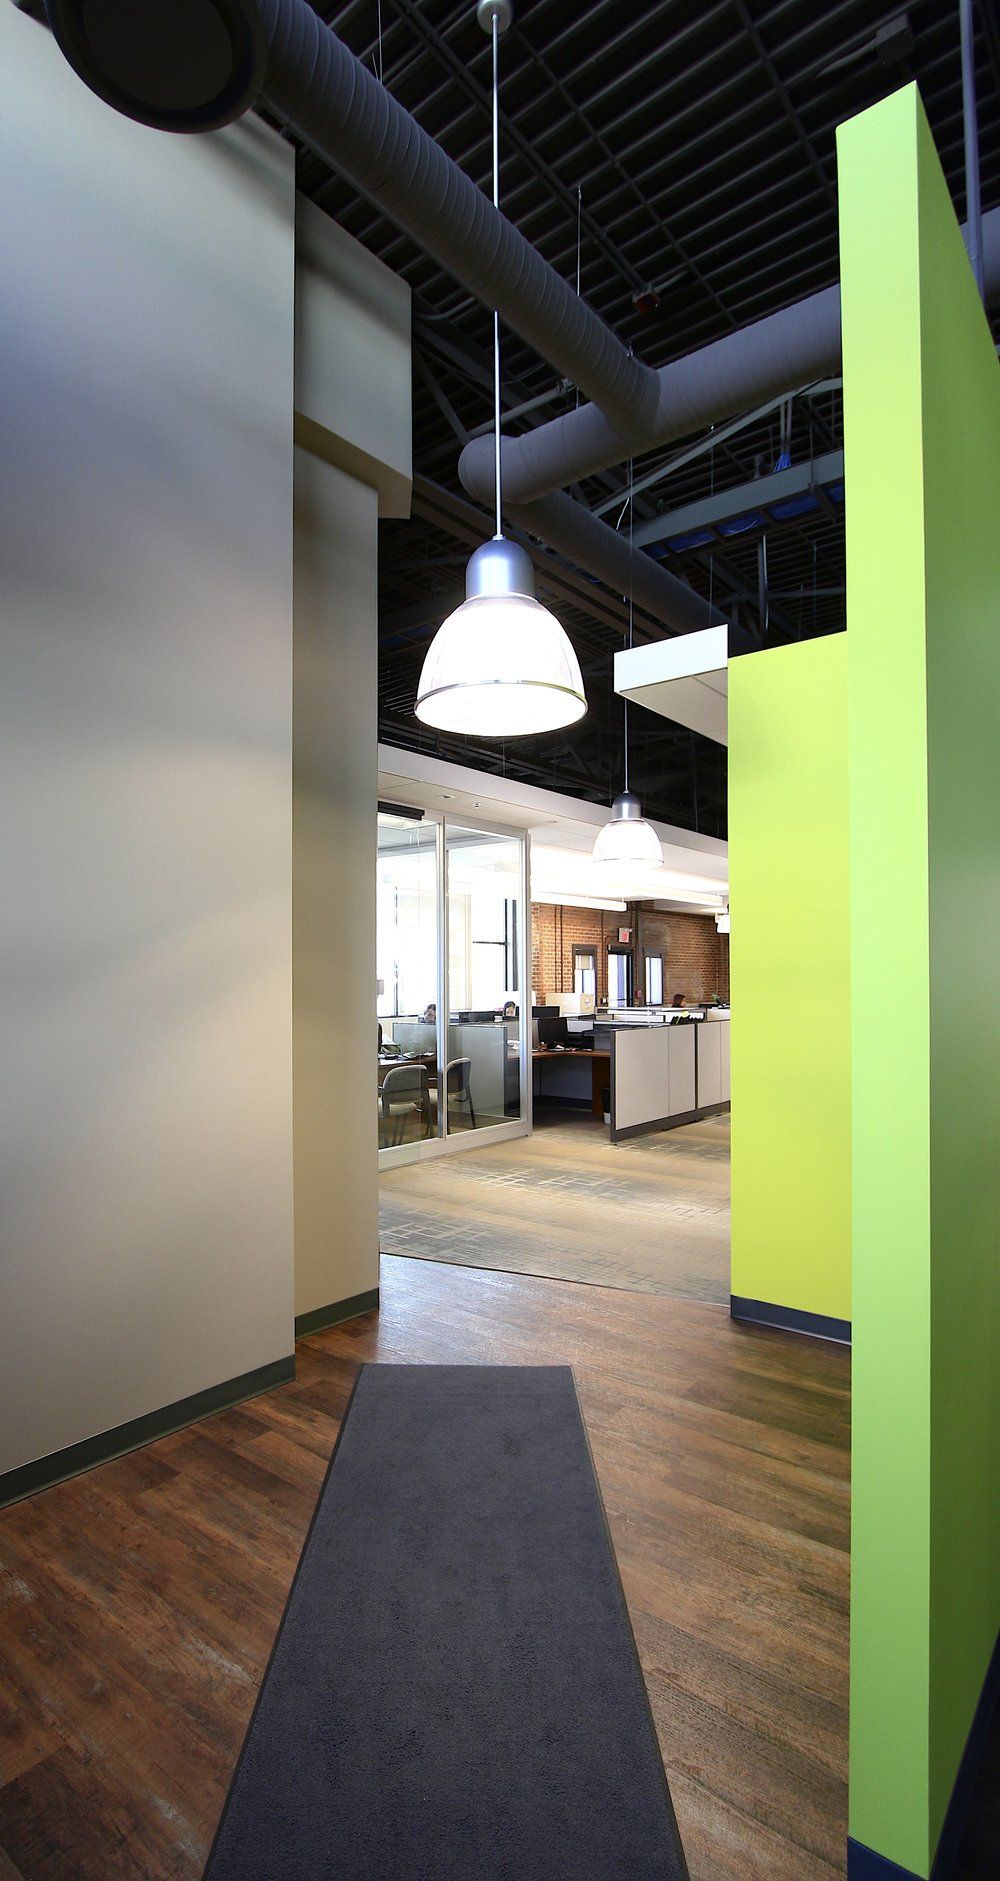 Metric Design, Interior Design, Saskatoon, Renovation, Green Wall, Wayfinding, Exposed Ceiling, Pendant Lighting, Office Lighting.jpg